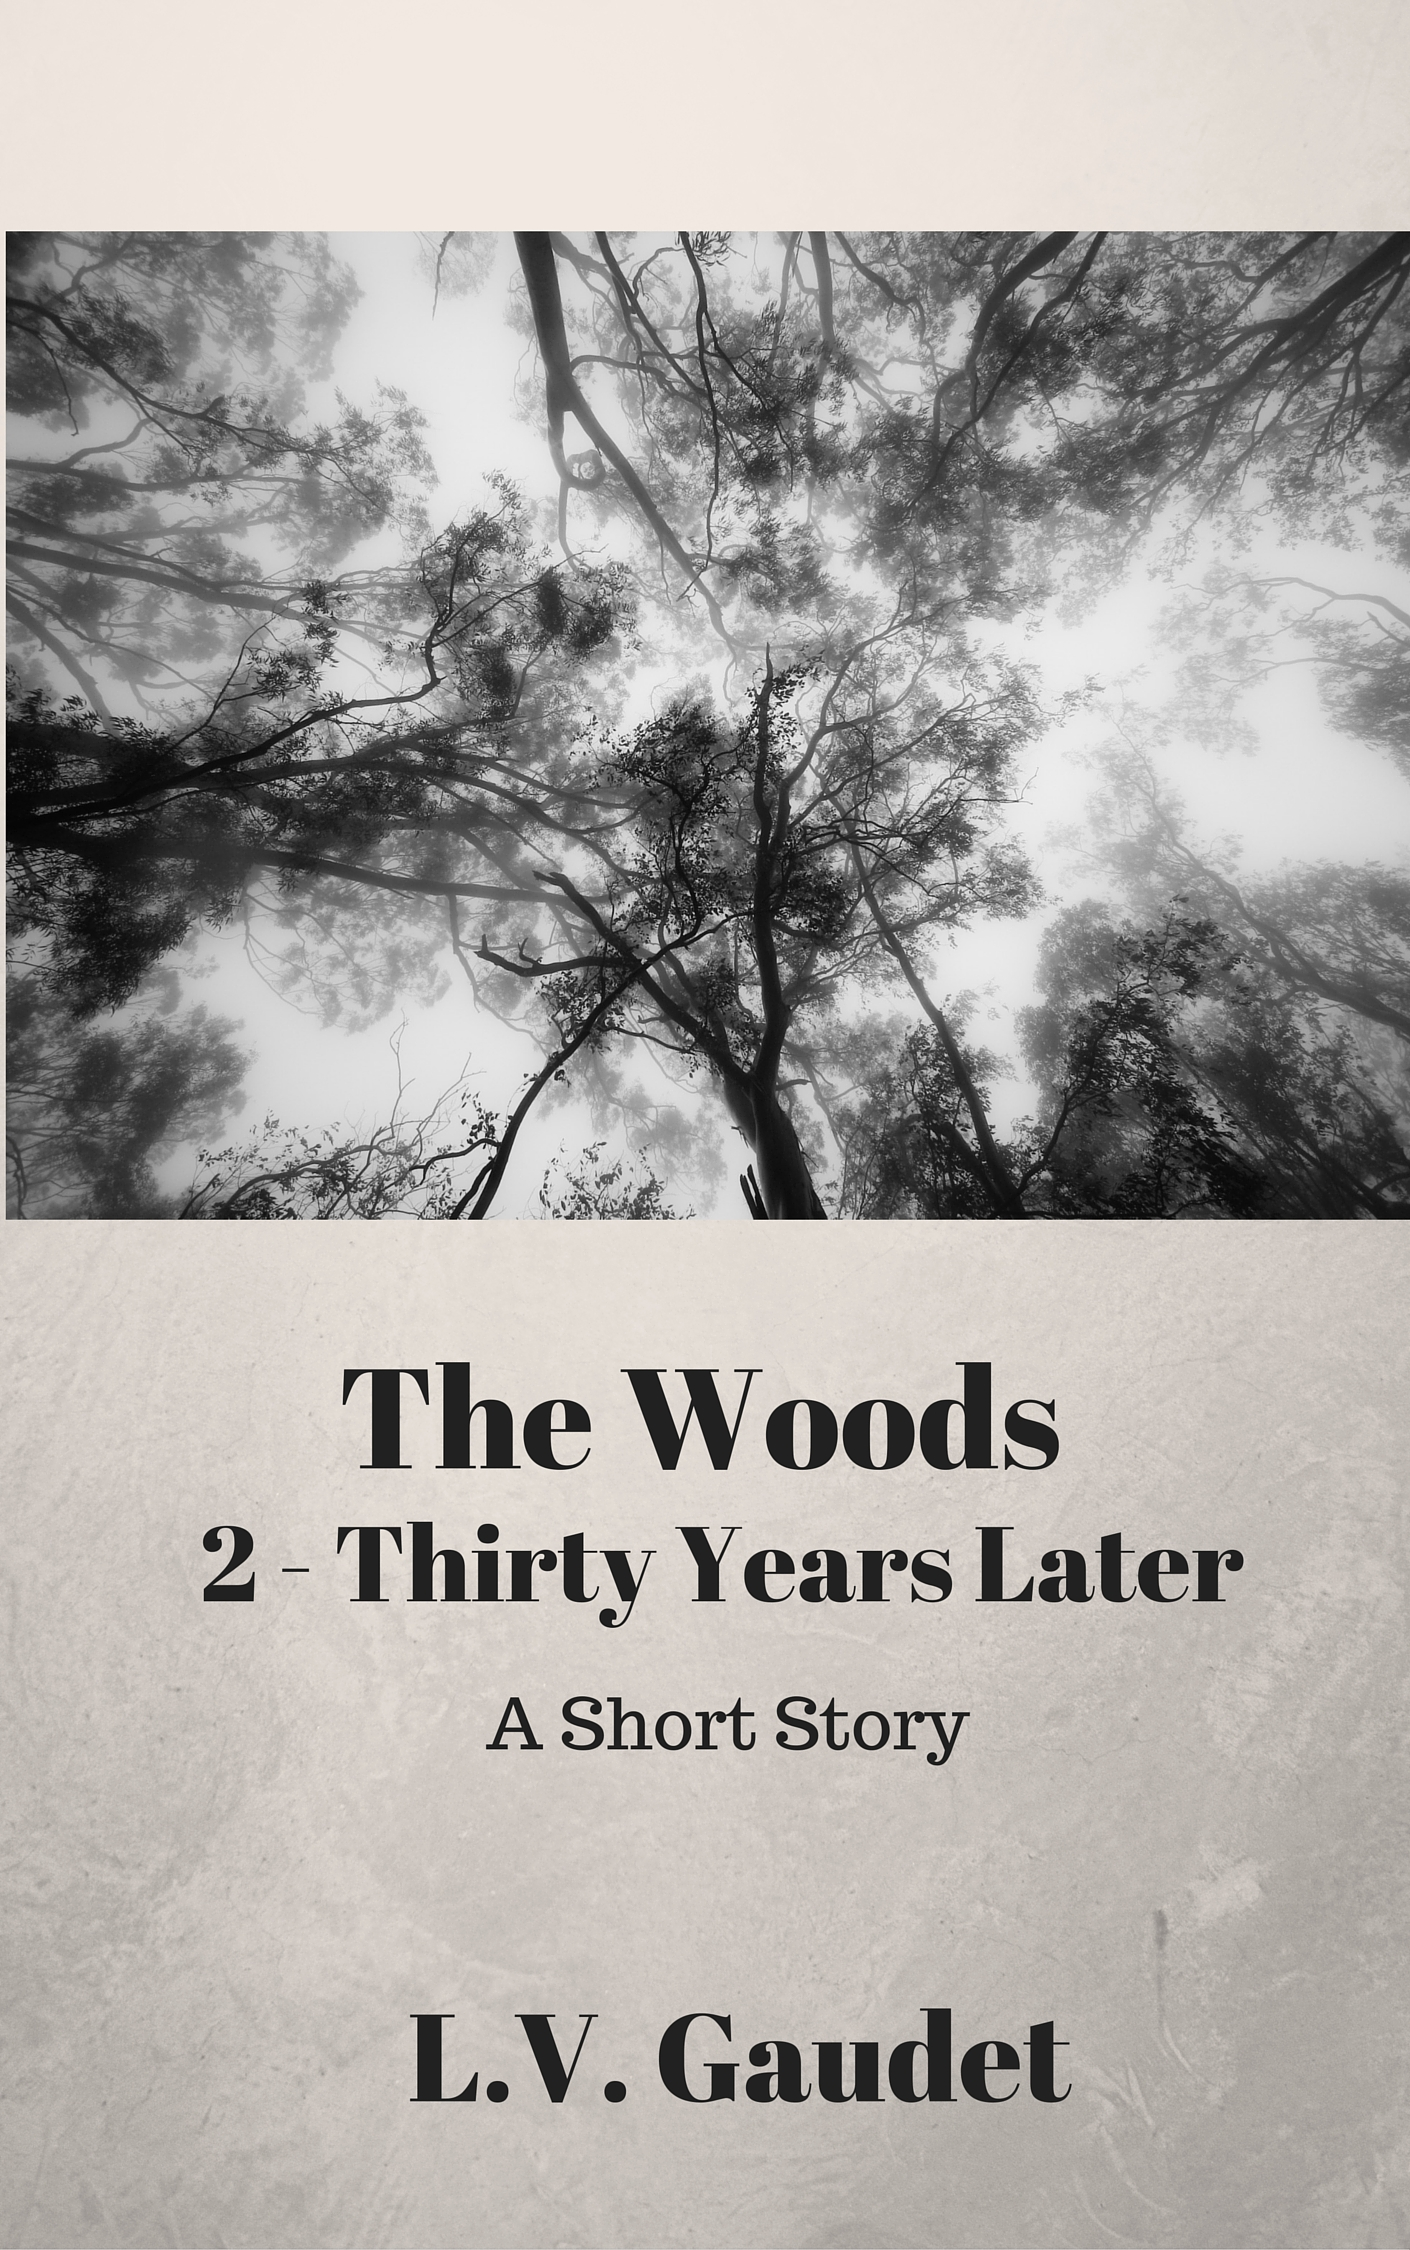 Short Story Indigo Sea Press Blog Faze 3 Fuse Box Handle The Woods 2 Thirty Years Later By Lv Gaudet